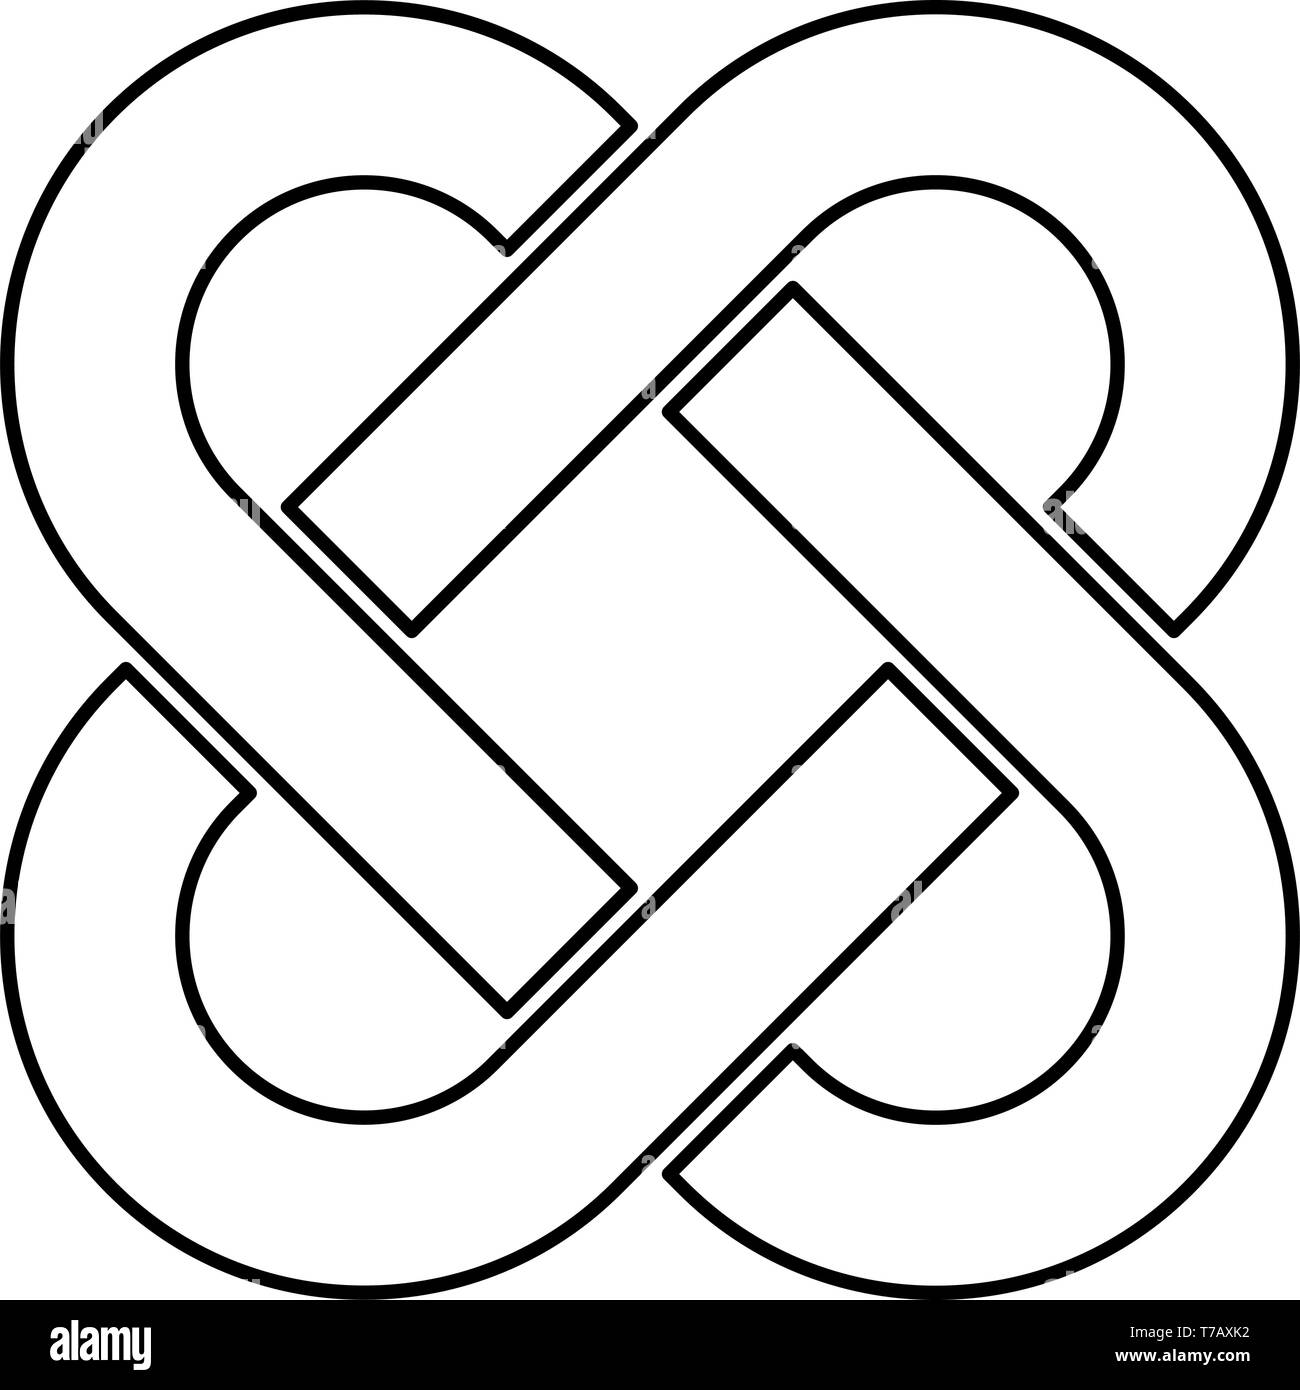 Celtic Knot Black and White Stock Photos & Images - Alamy